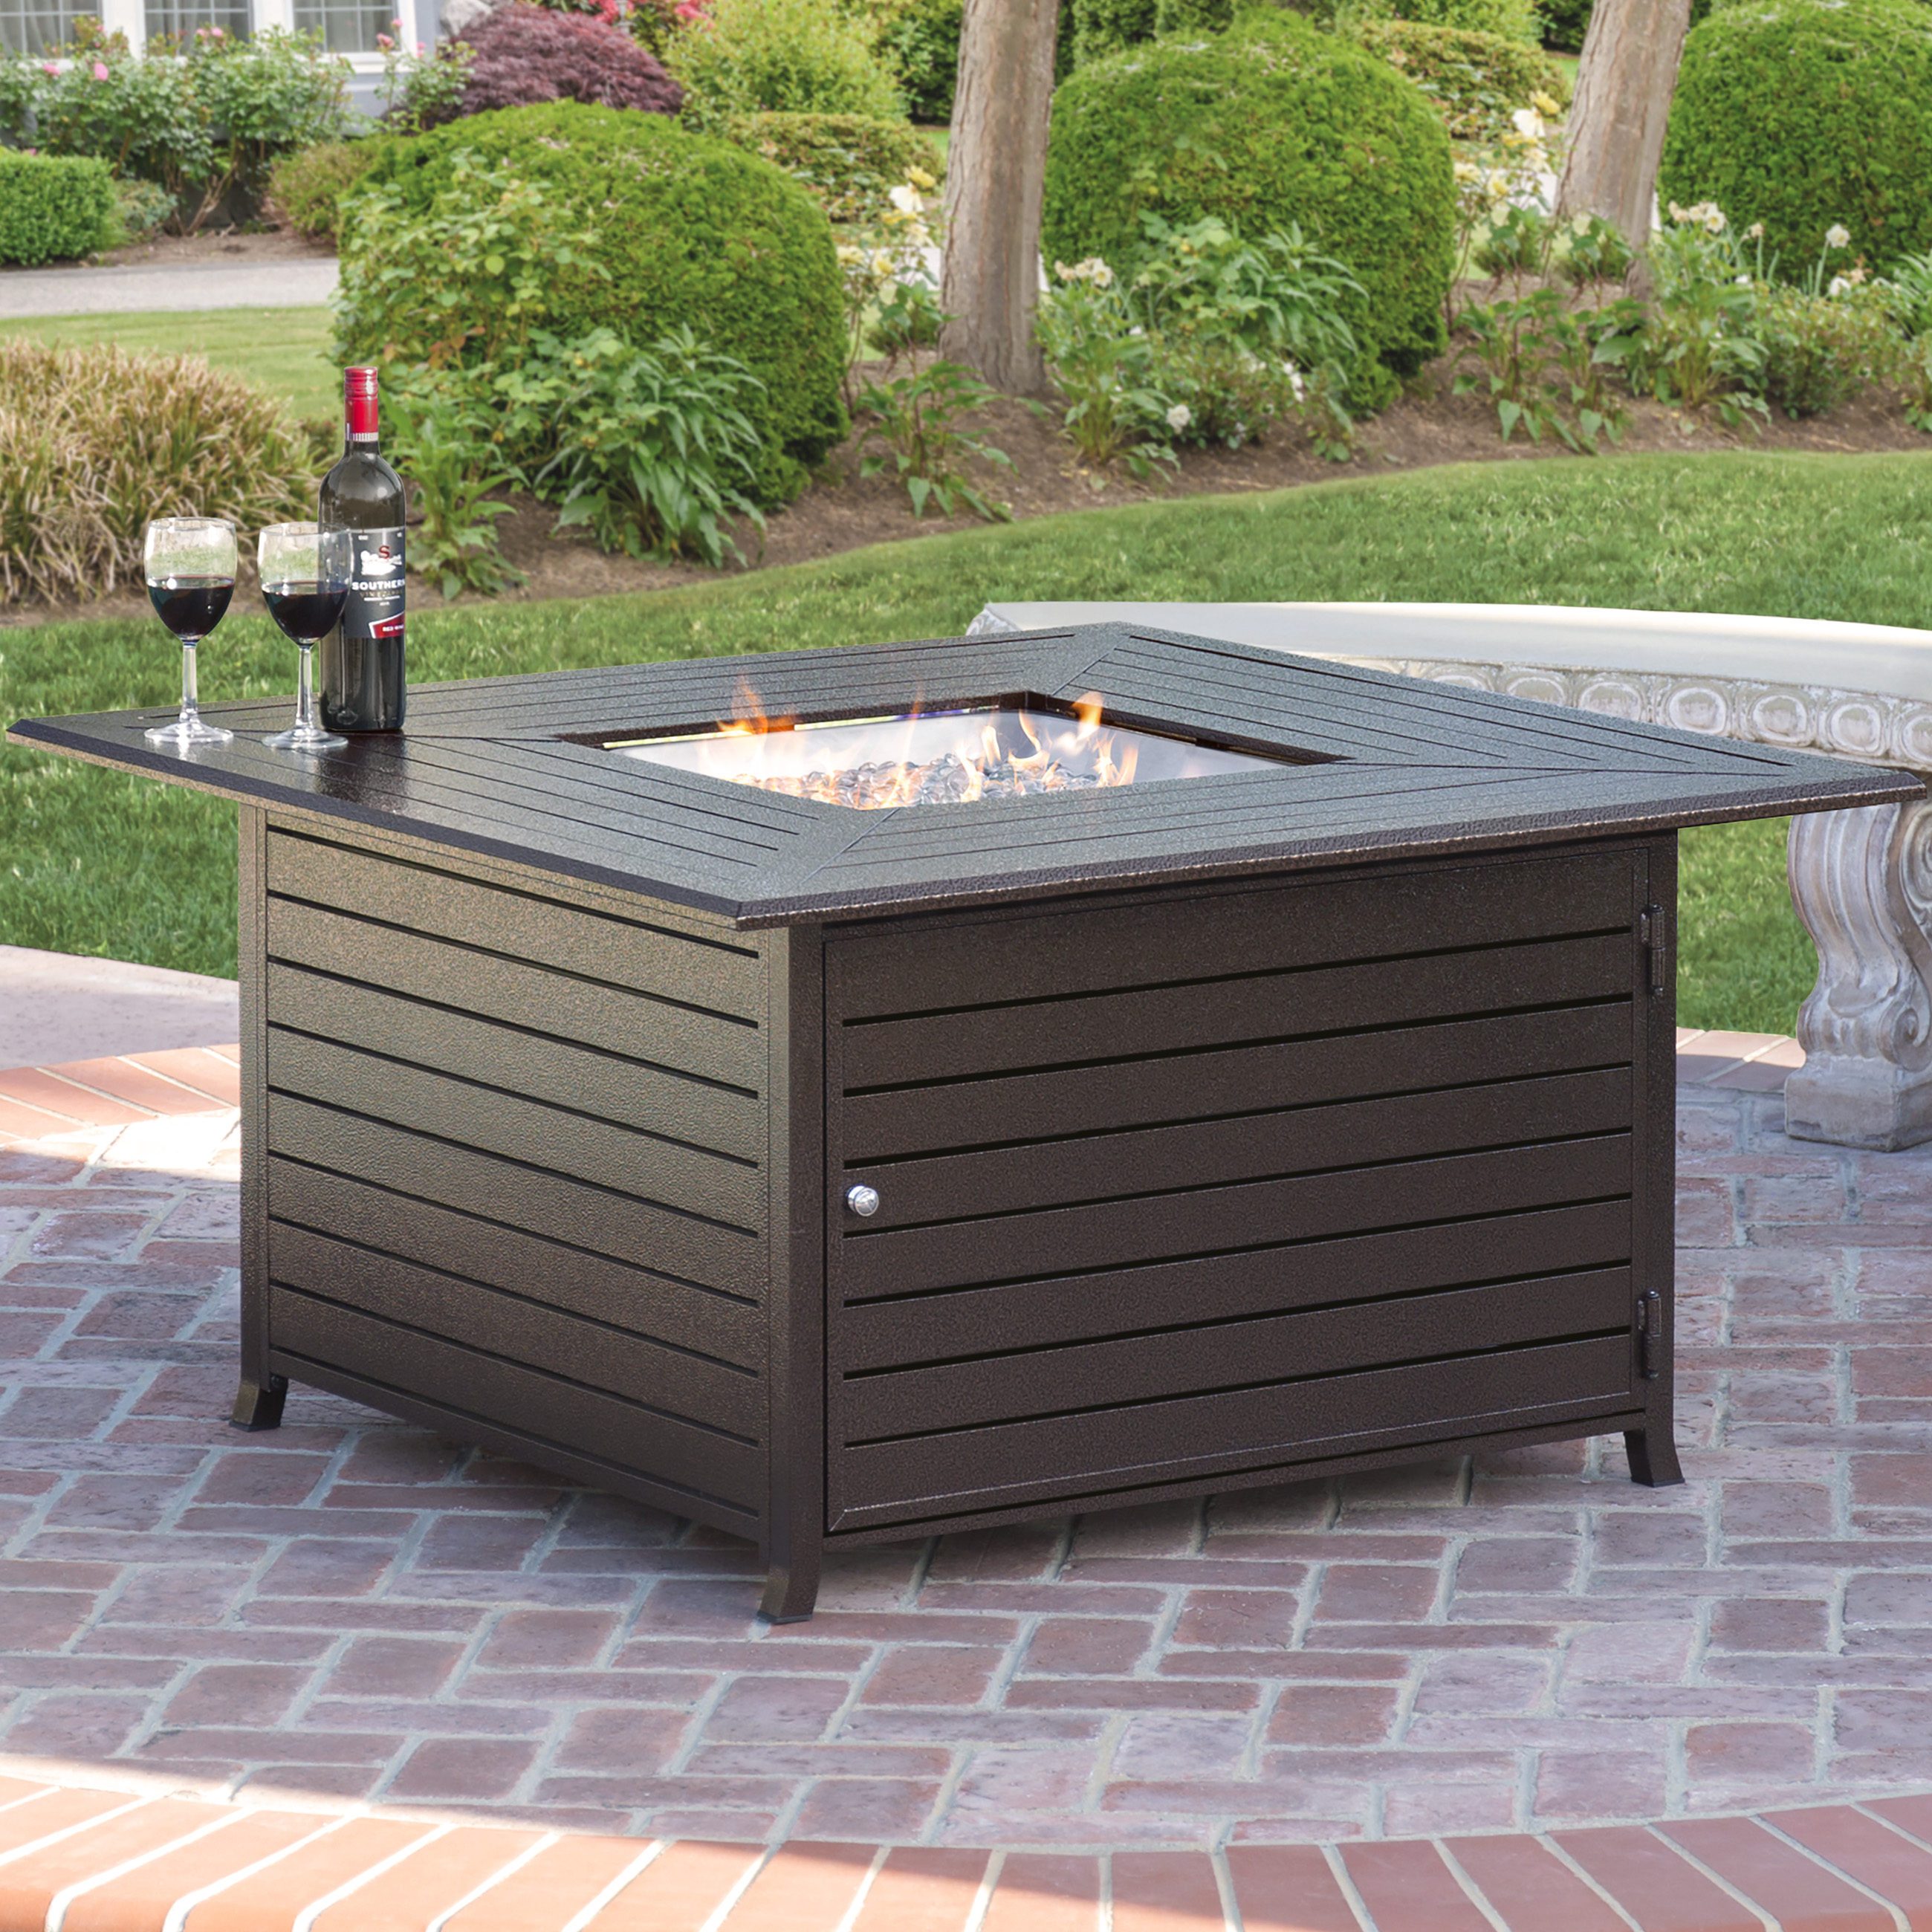 Extruded Aluminum Fire Pit Table